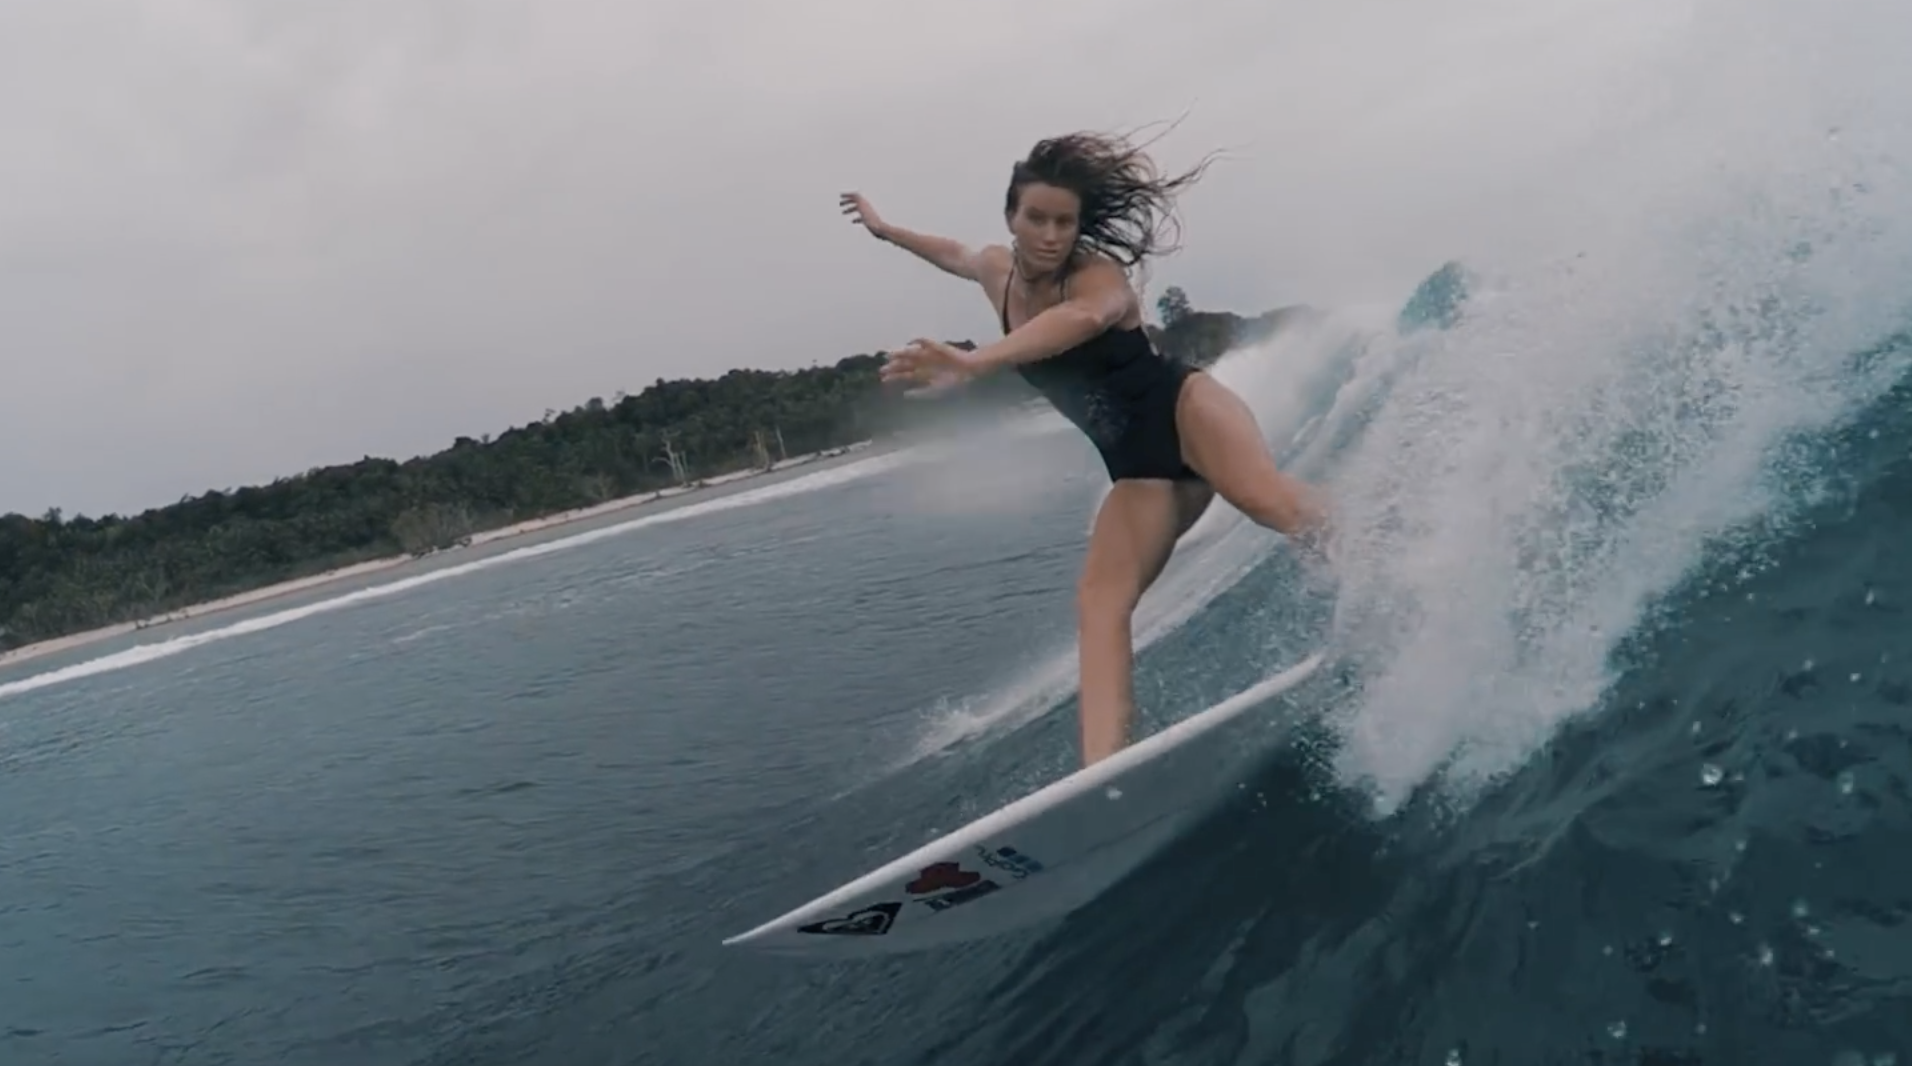 Surfing The Mentawai Islands With Bianca Buitendag